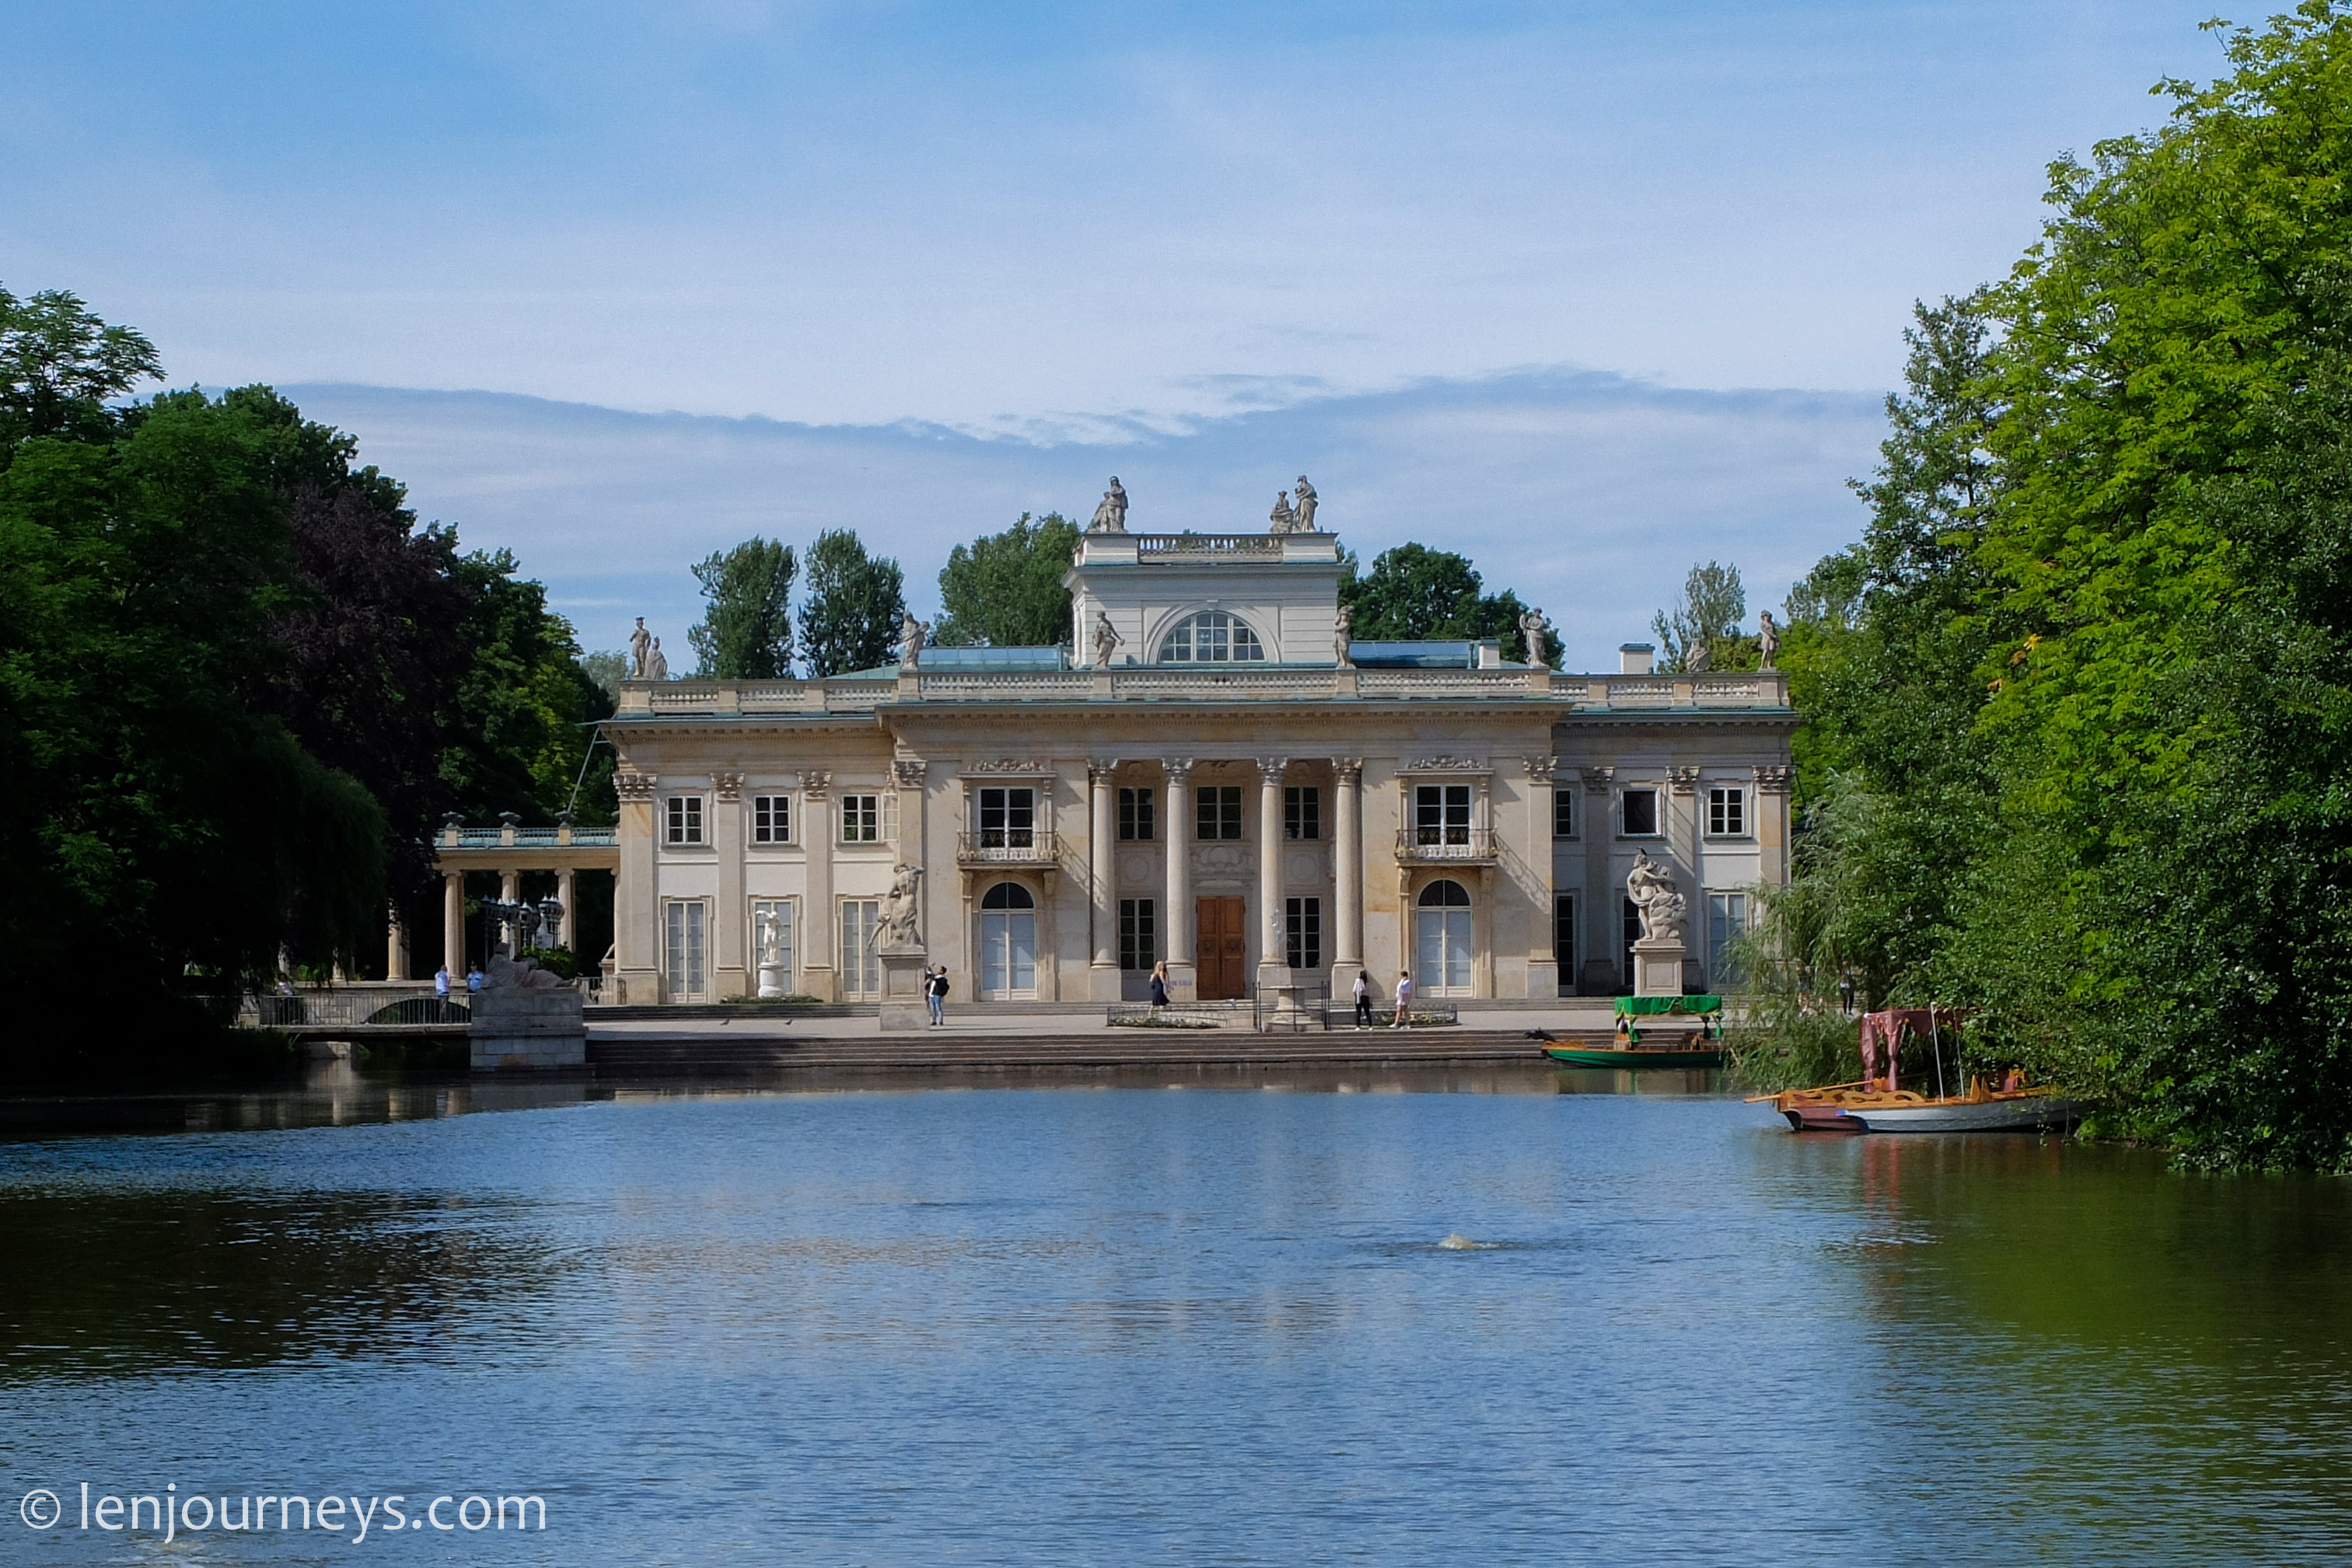 Palace in the Lazienki Park, Warsaw